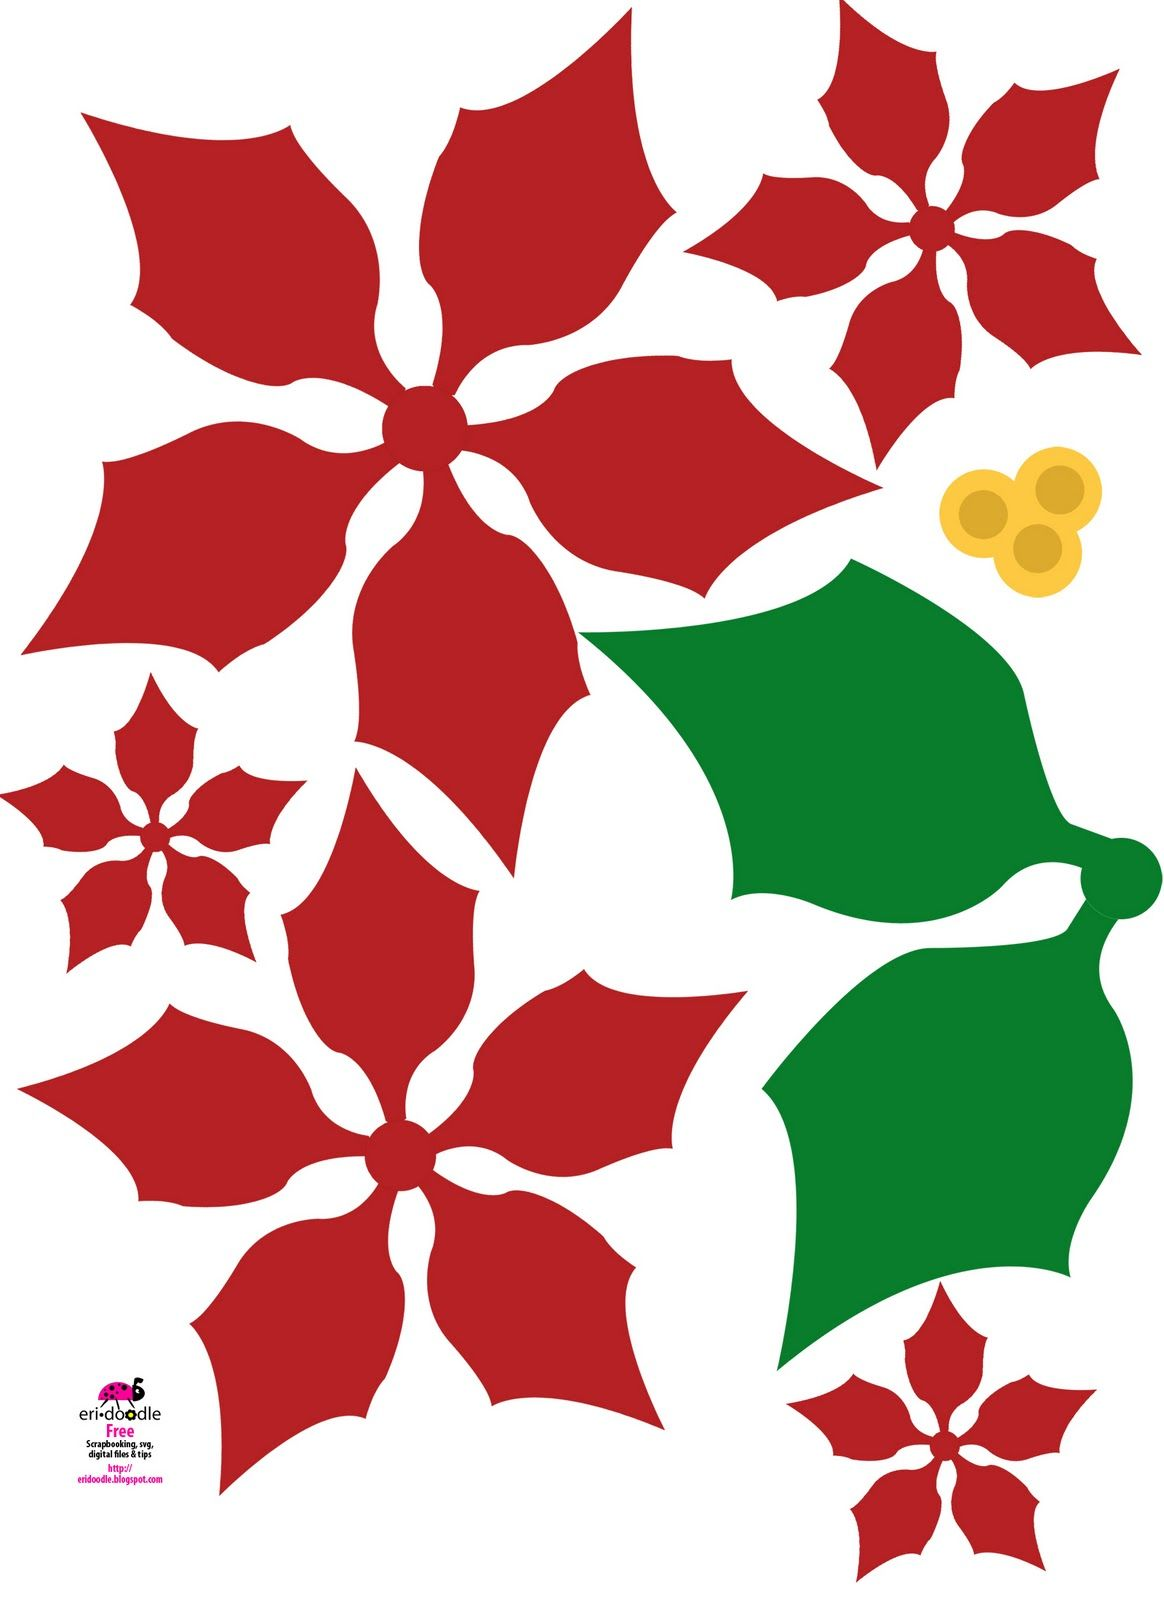 paper poinsettia christmas flower free download template for kids wedding kits - Christmas Poinsettia